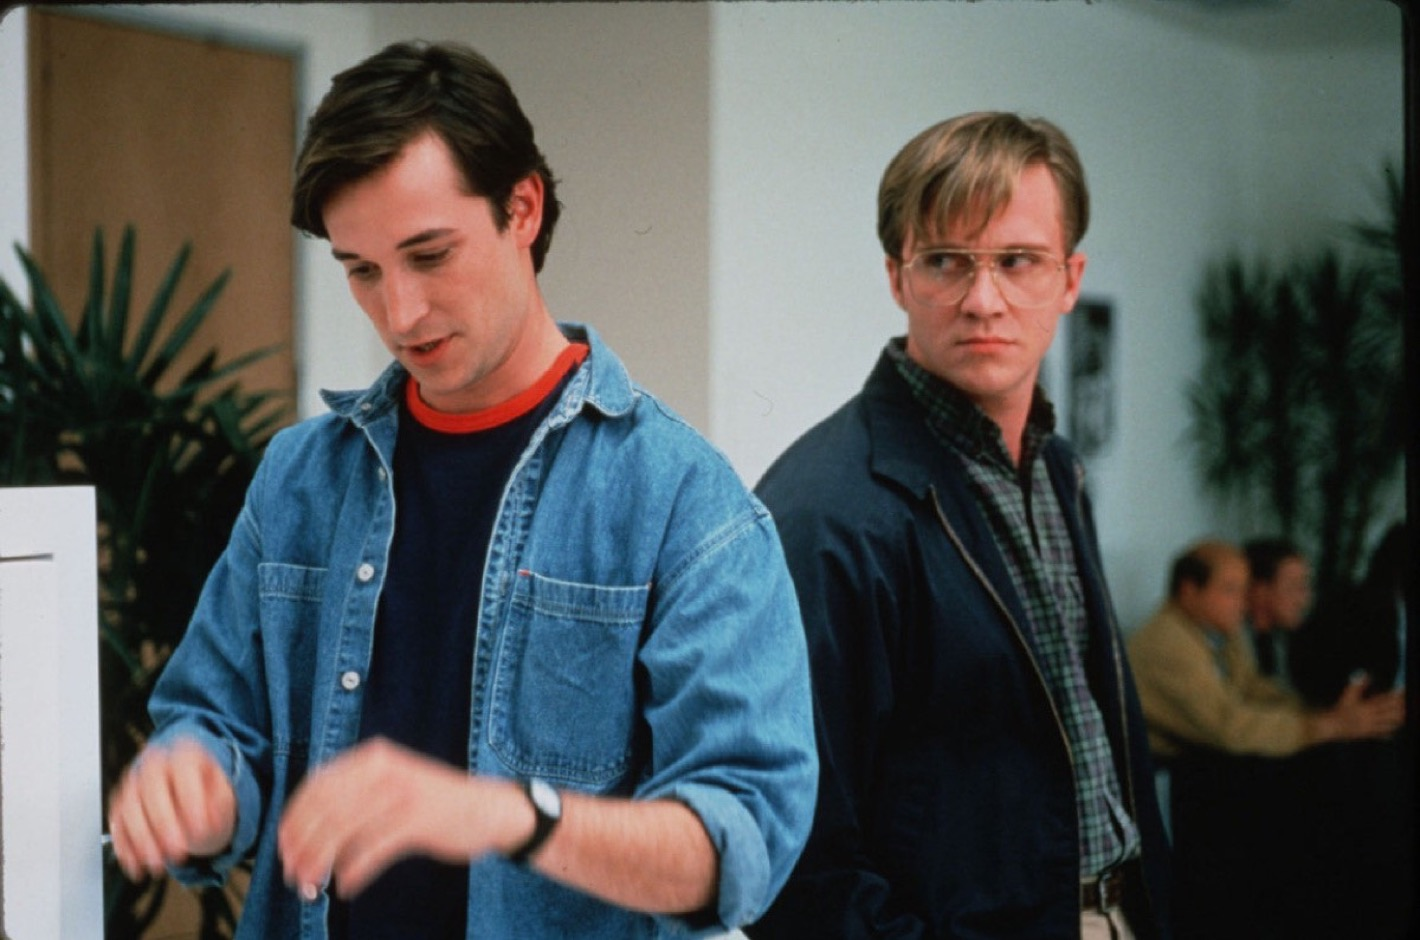 Noah Wyle as Steve Jobs and Anthony Micheal Hall as Bill Gates in Pirates of Silicon Valley